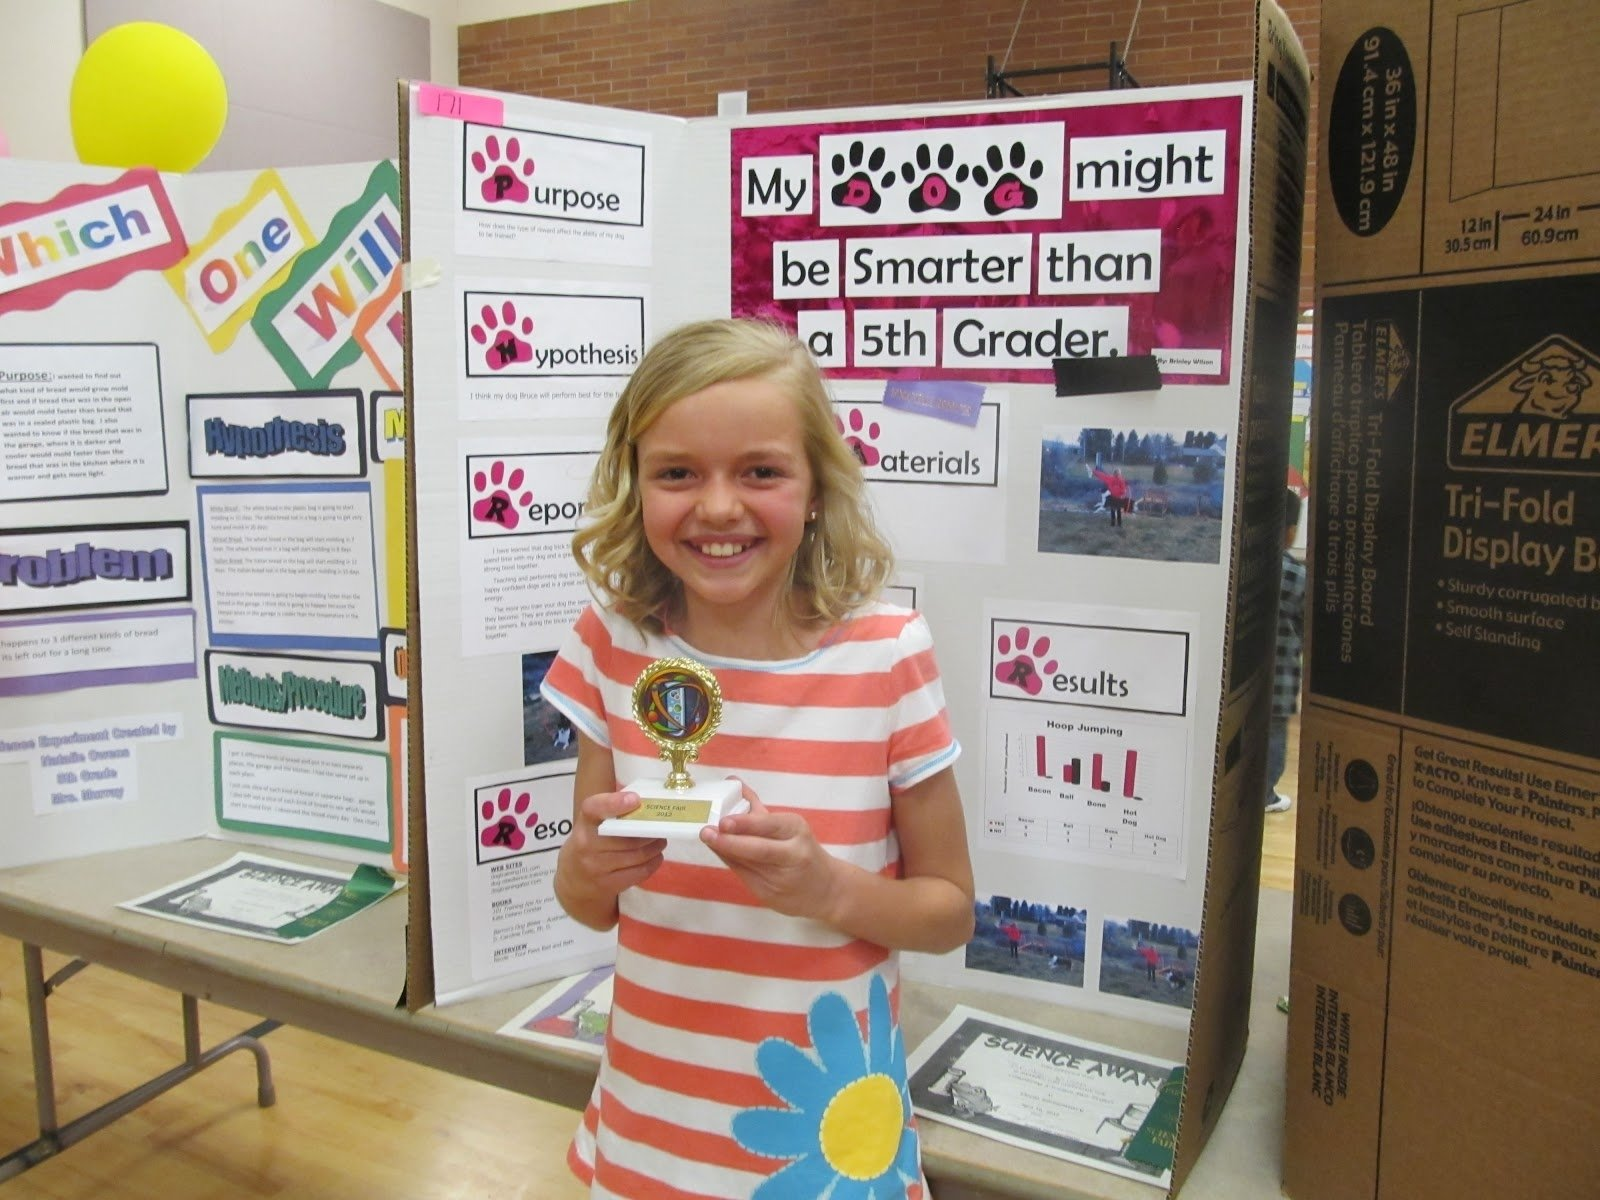 10 Most Recommended Fifth Grade Science Fair Ideas the science of my life updated declo science fair with newspaper 45 2020